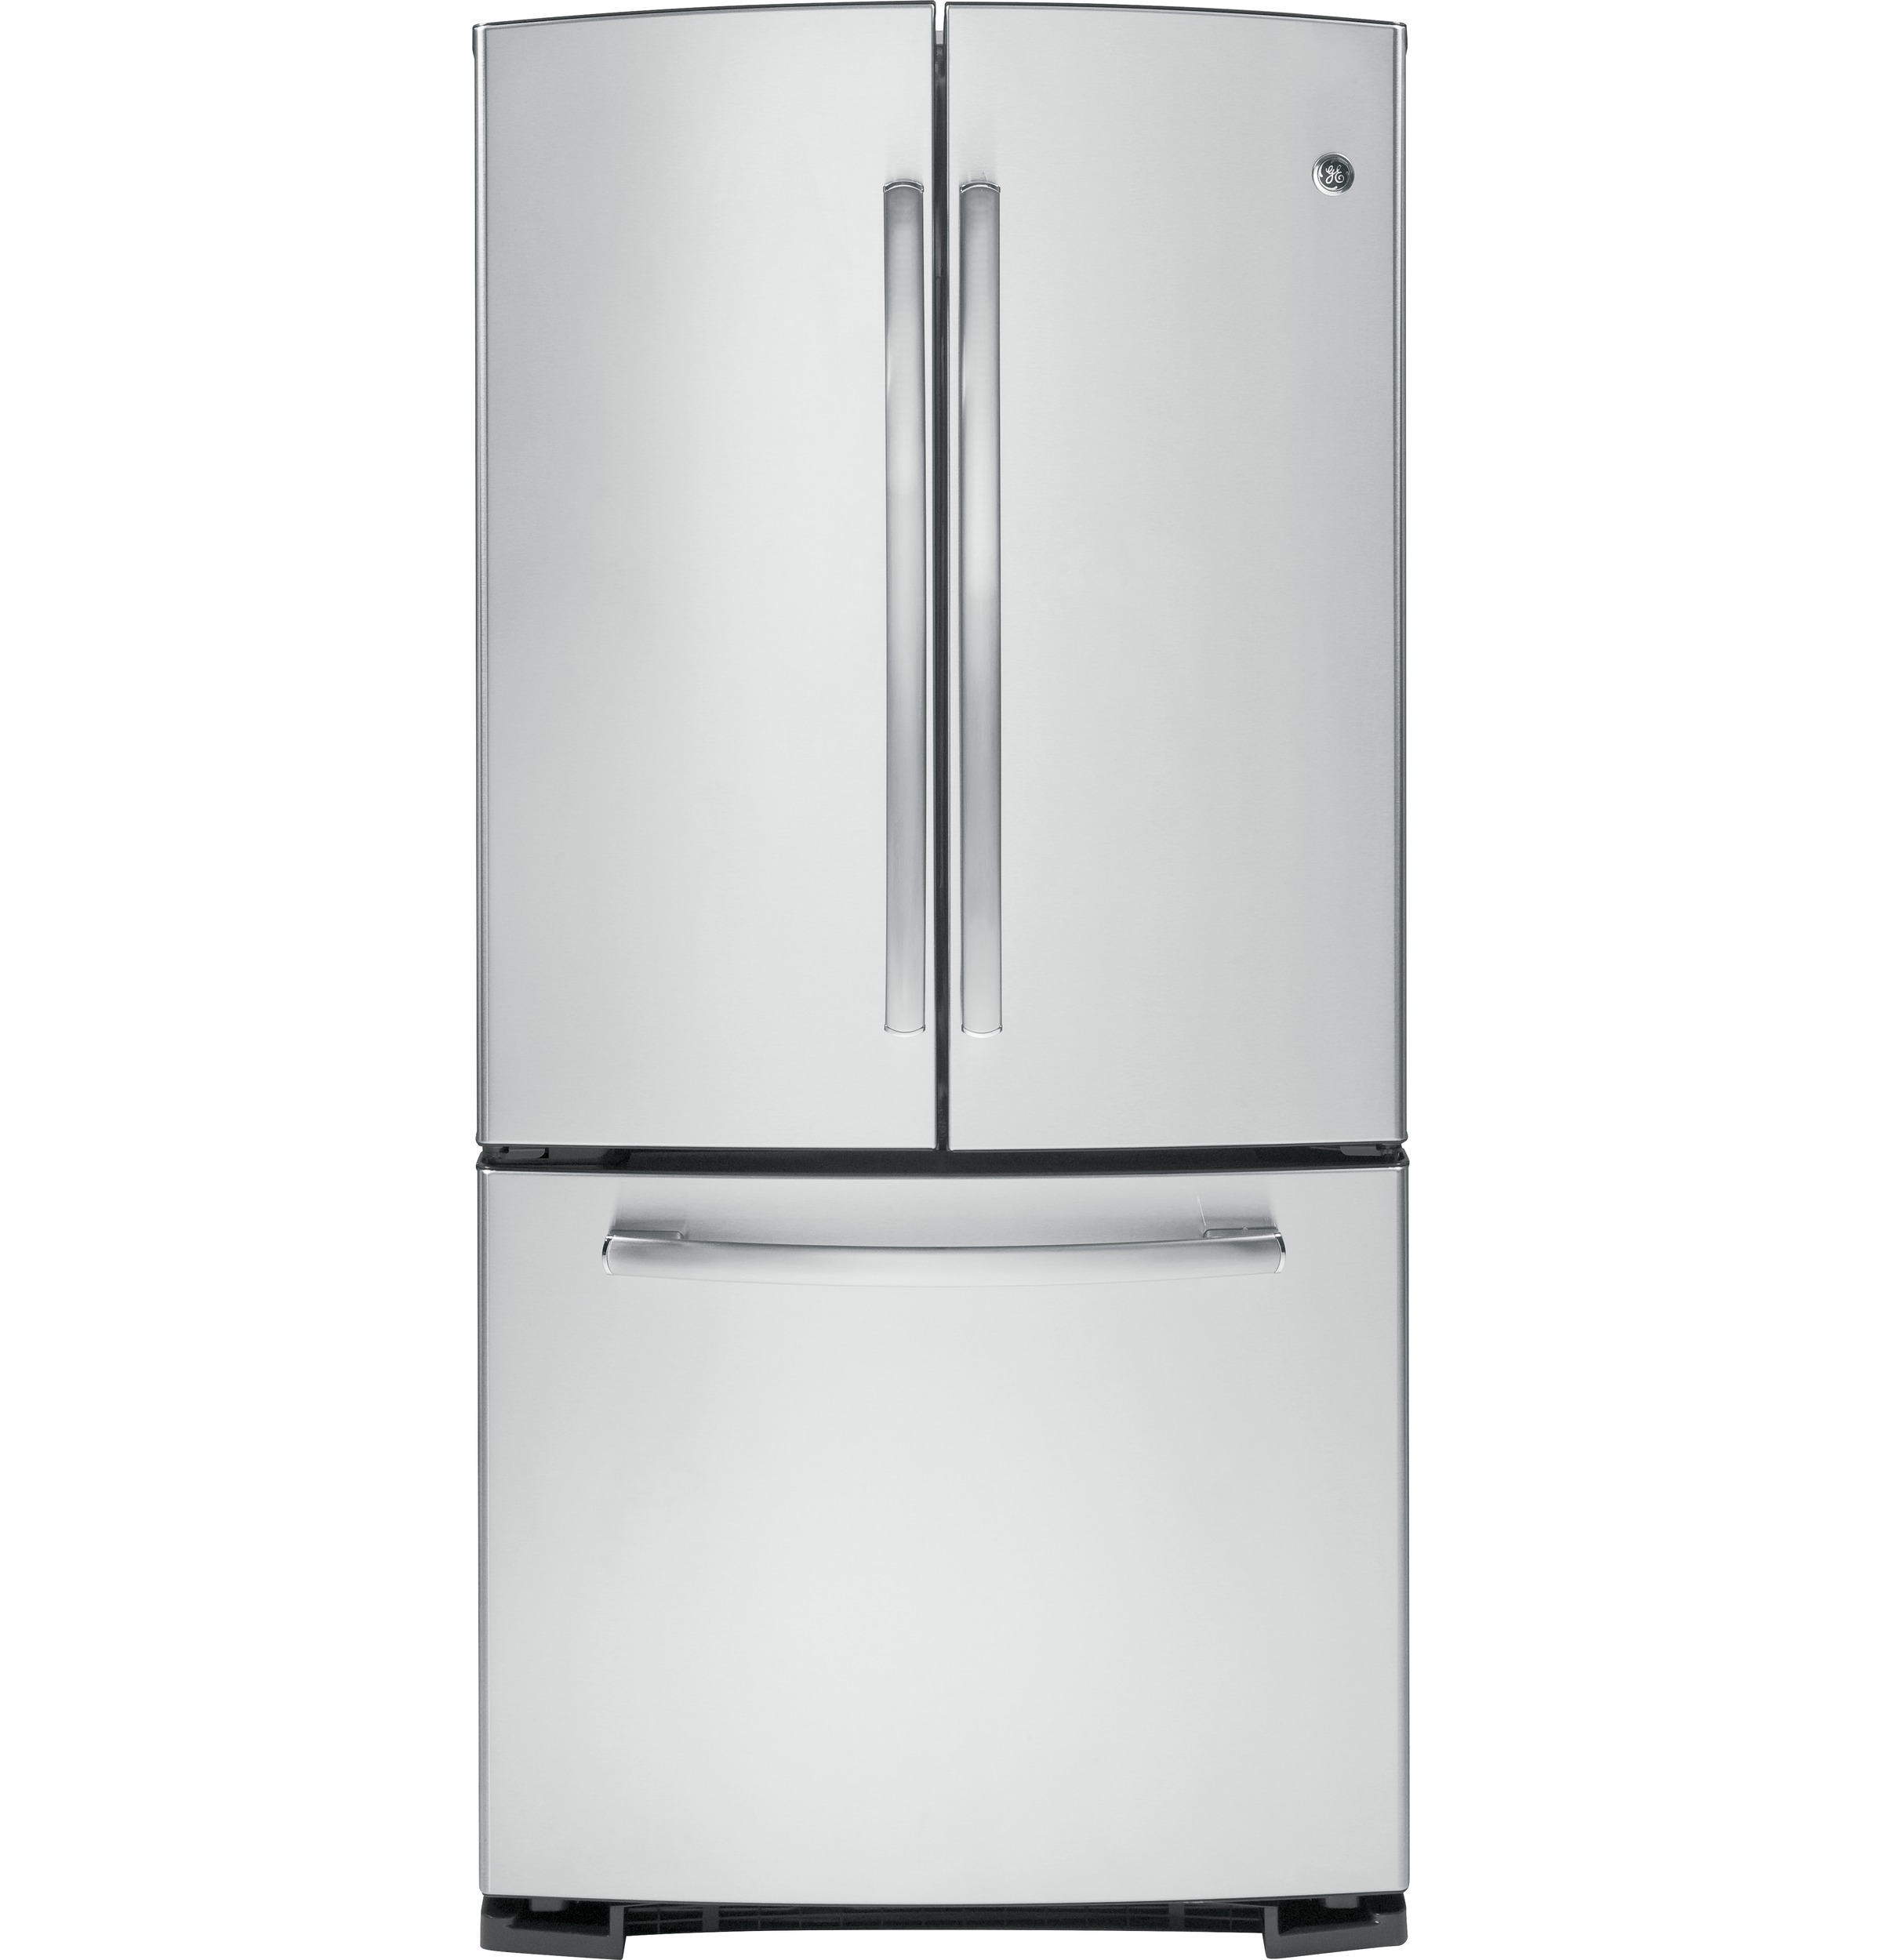 Ge 227 cu ft french door refrigerator gns23gshss ge appliances product image rubansaba